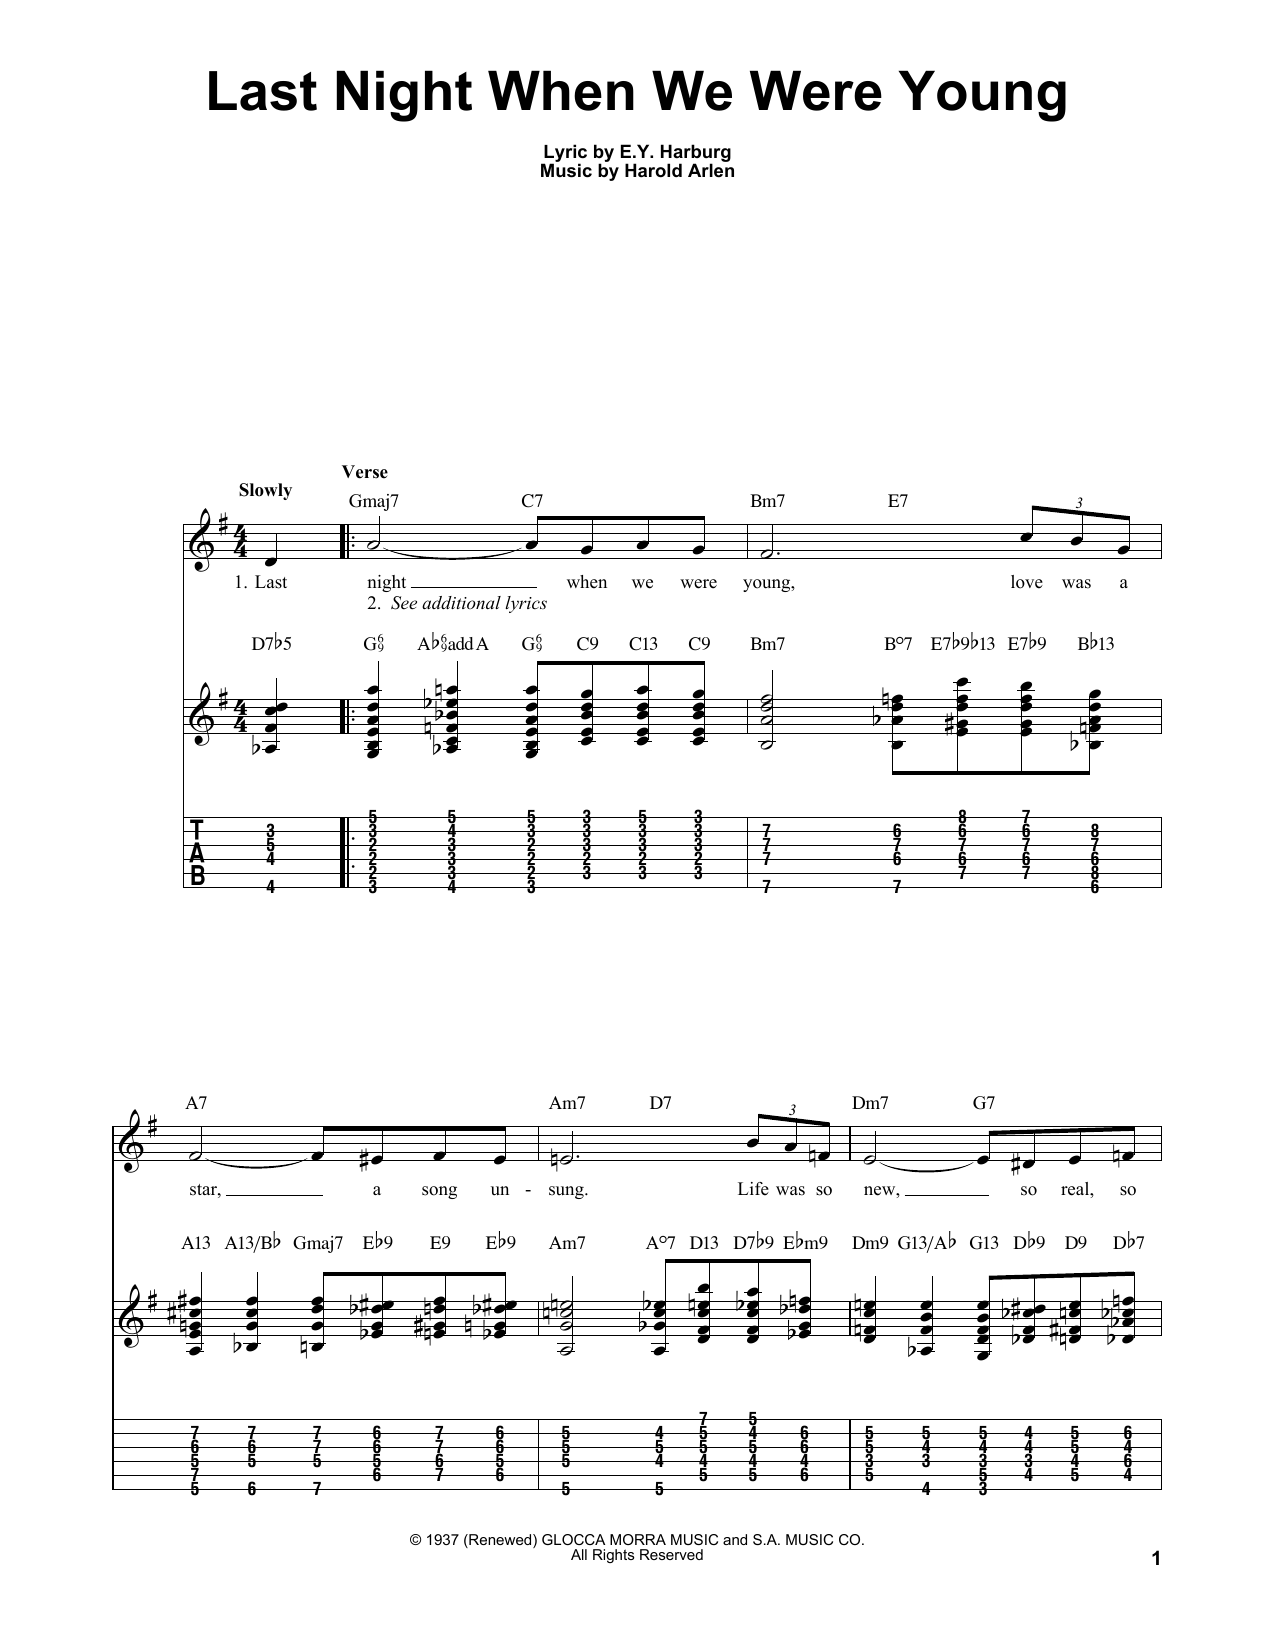 Kenny Burrell Last Night When We Were Young sheet music notes and chords. Download Printable PDF.